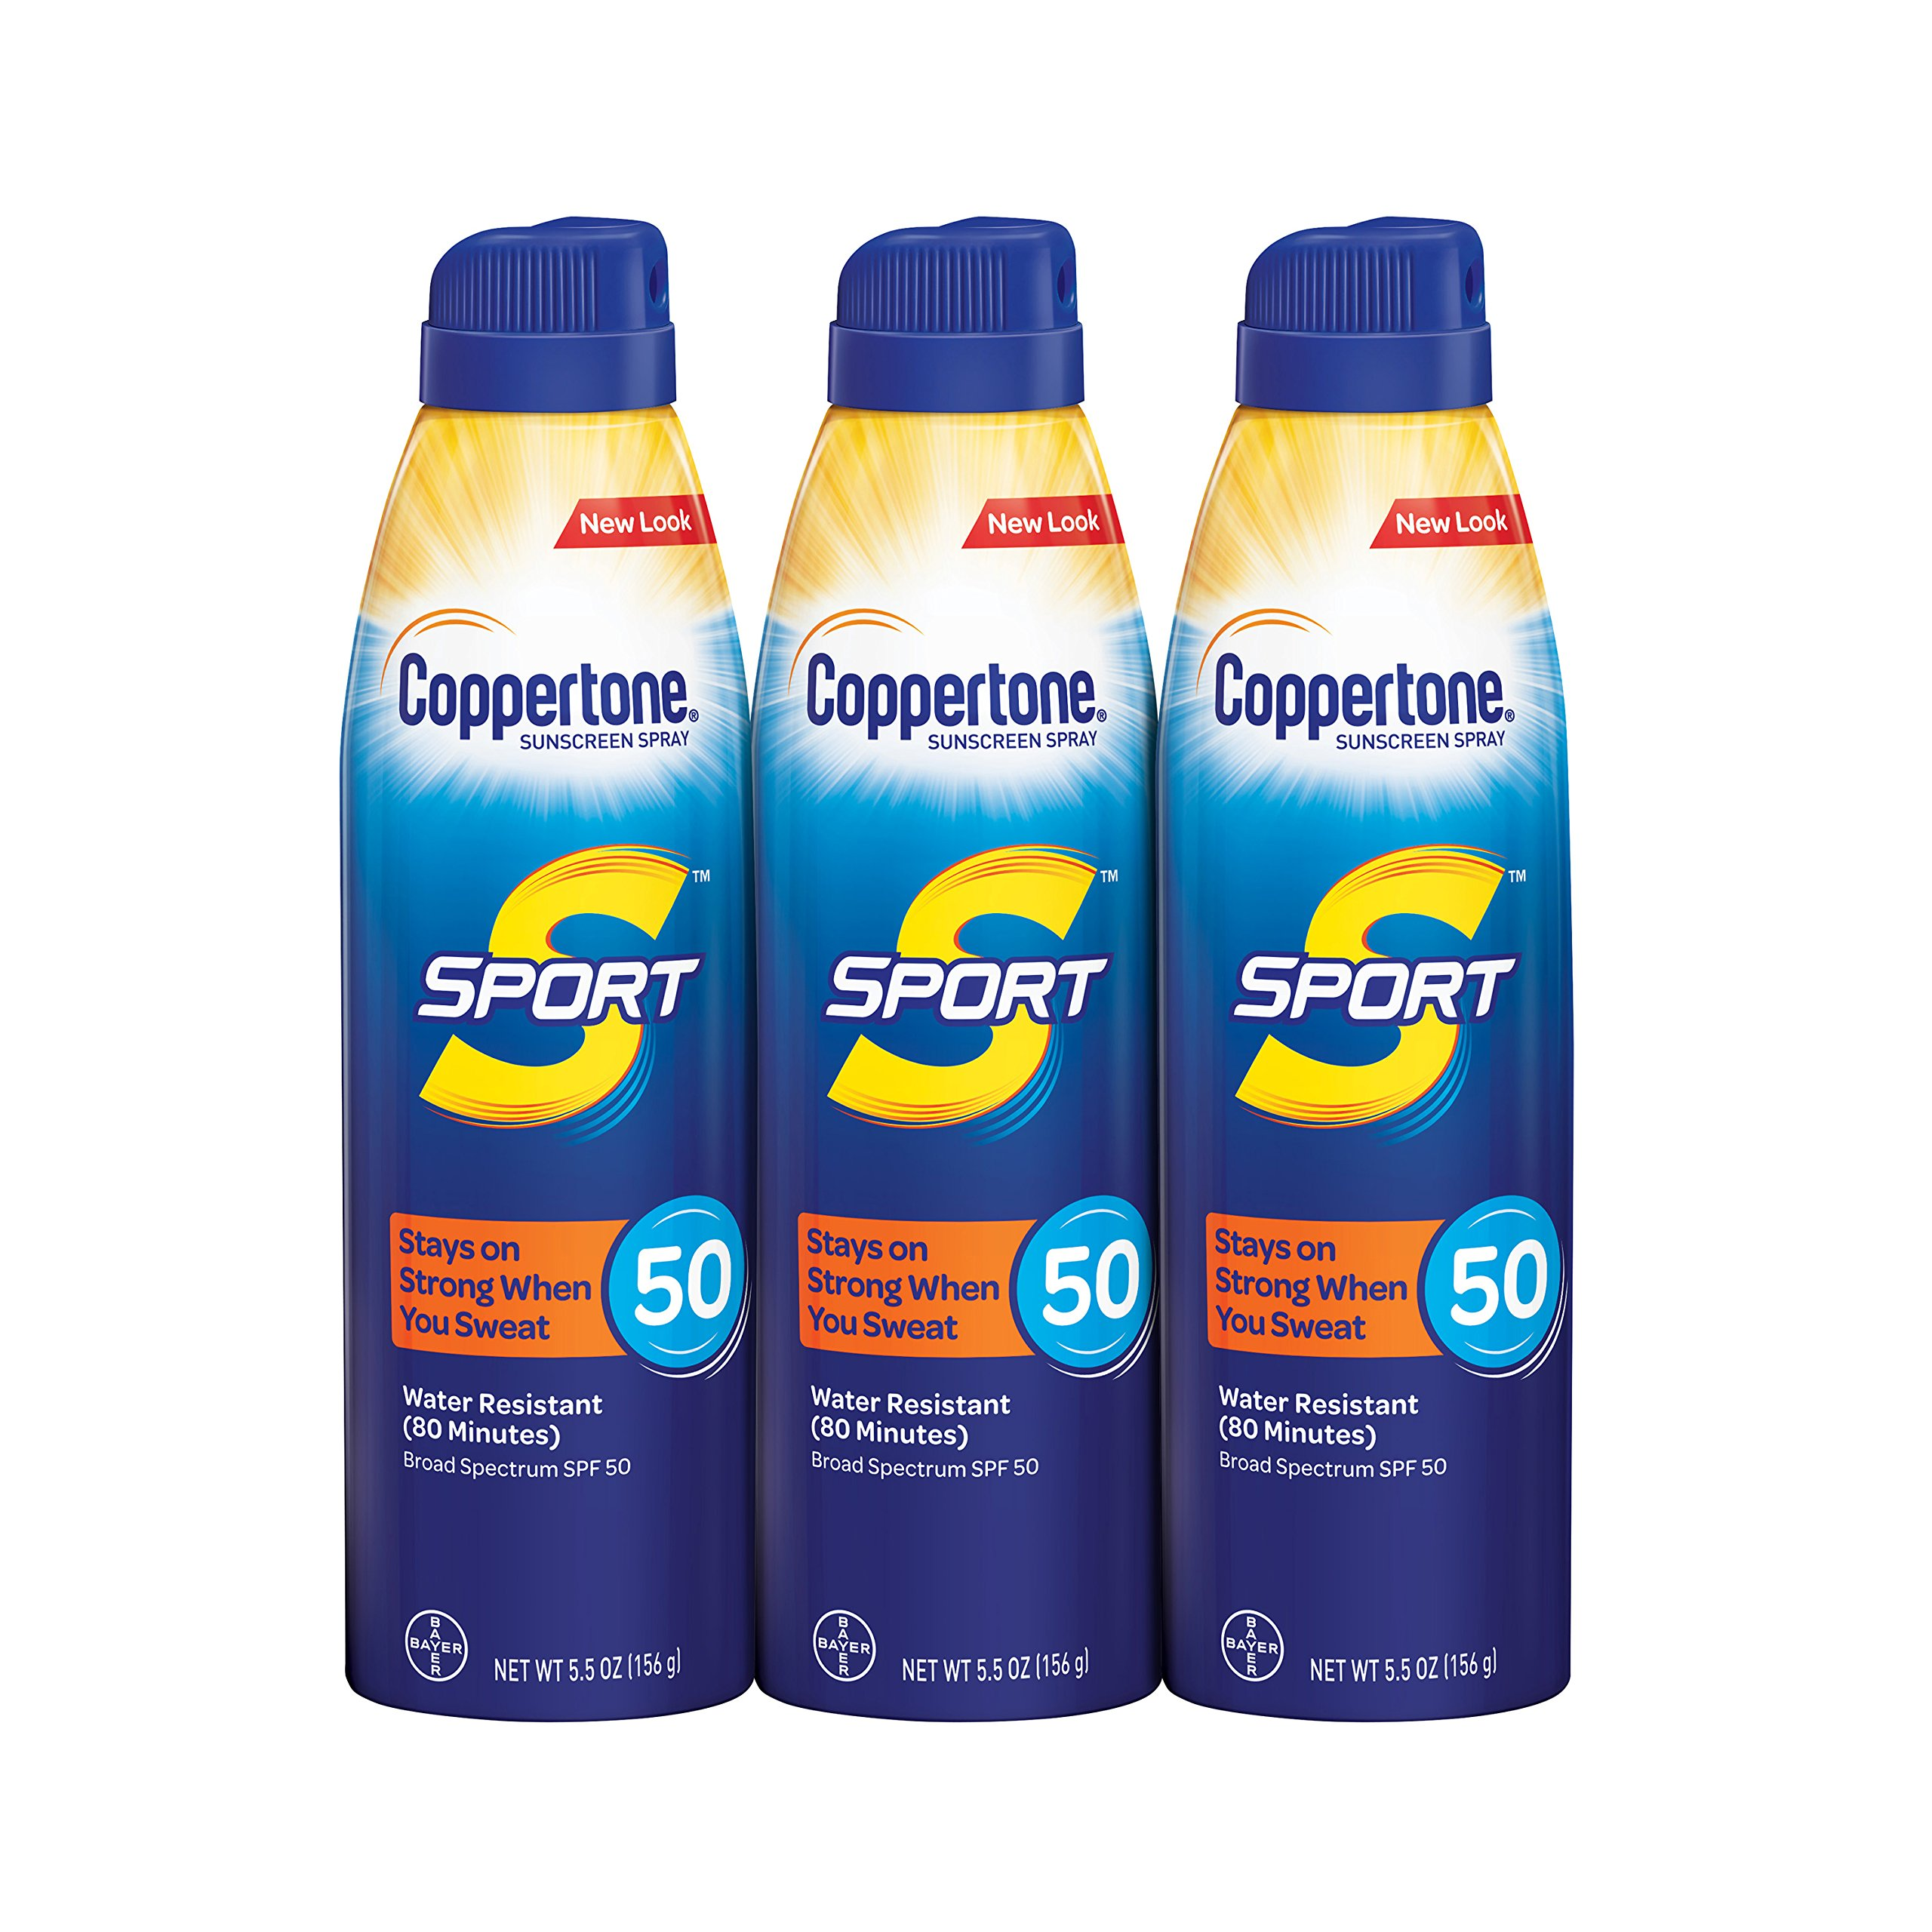 Coppertone SPORT Continuous Sunscreen Spray Broad Spectrum SPF 50 Multipack (5.5 Ounce Bottle, Pack of 3) (Packaging May Vary) by Coppertone